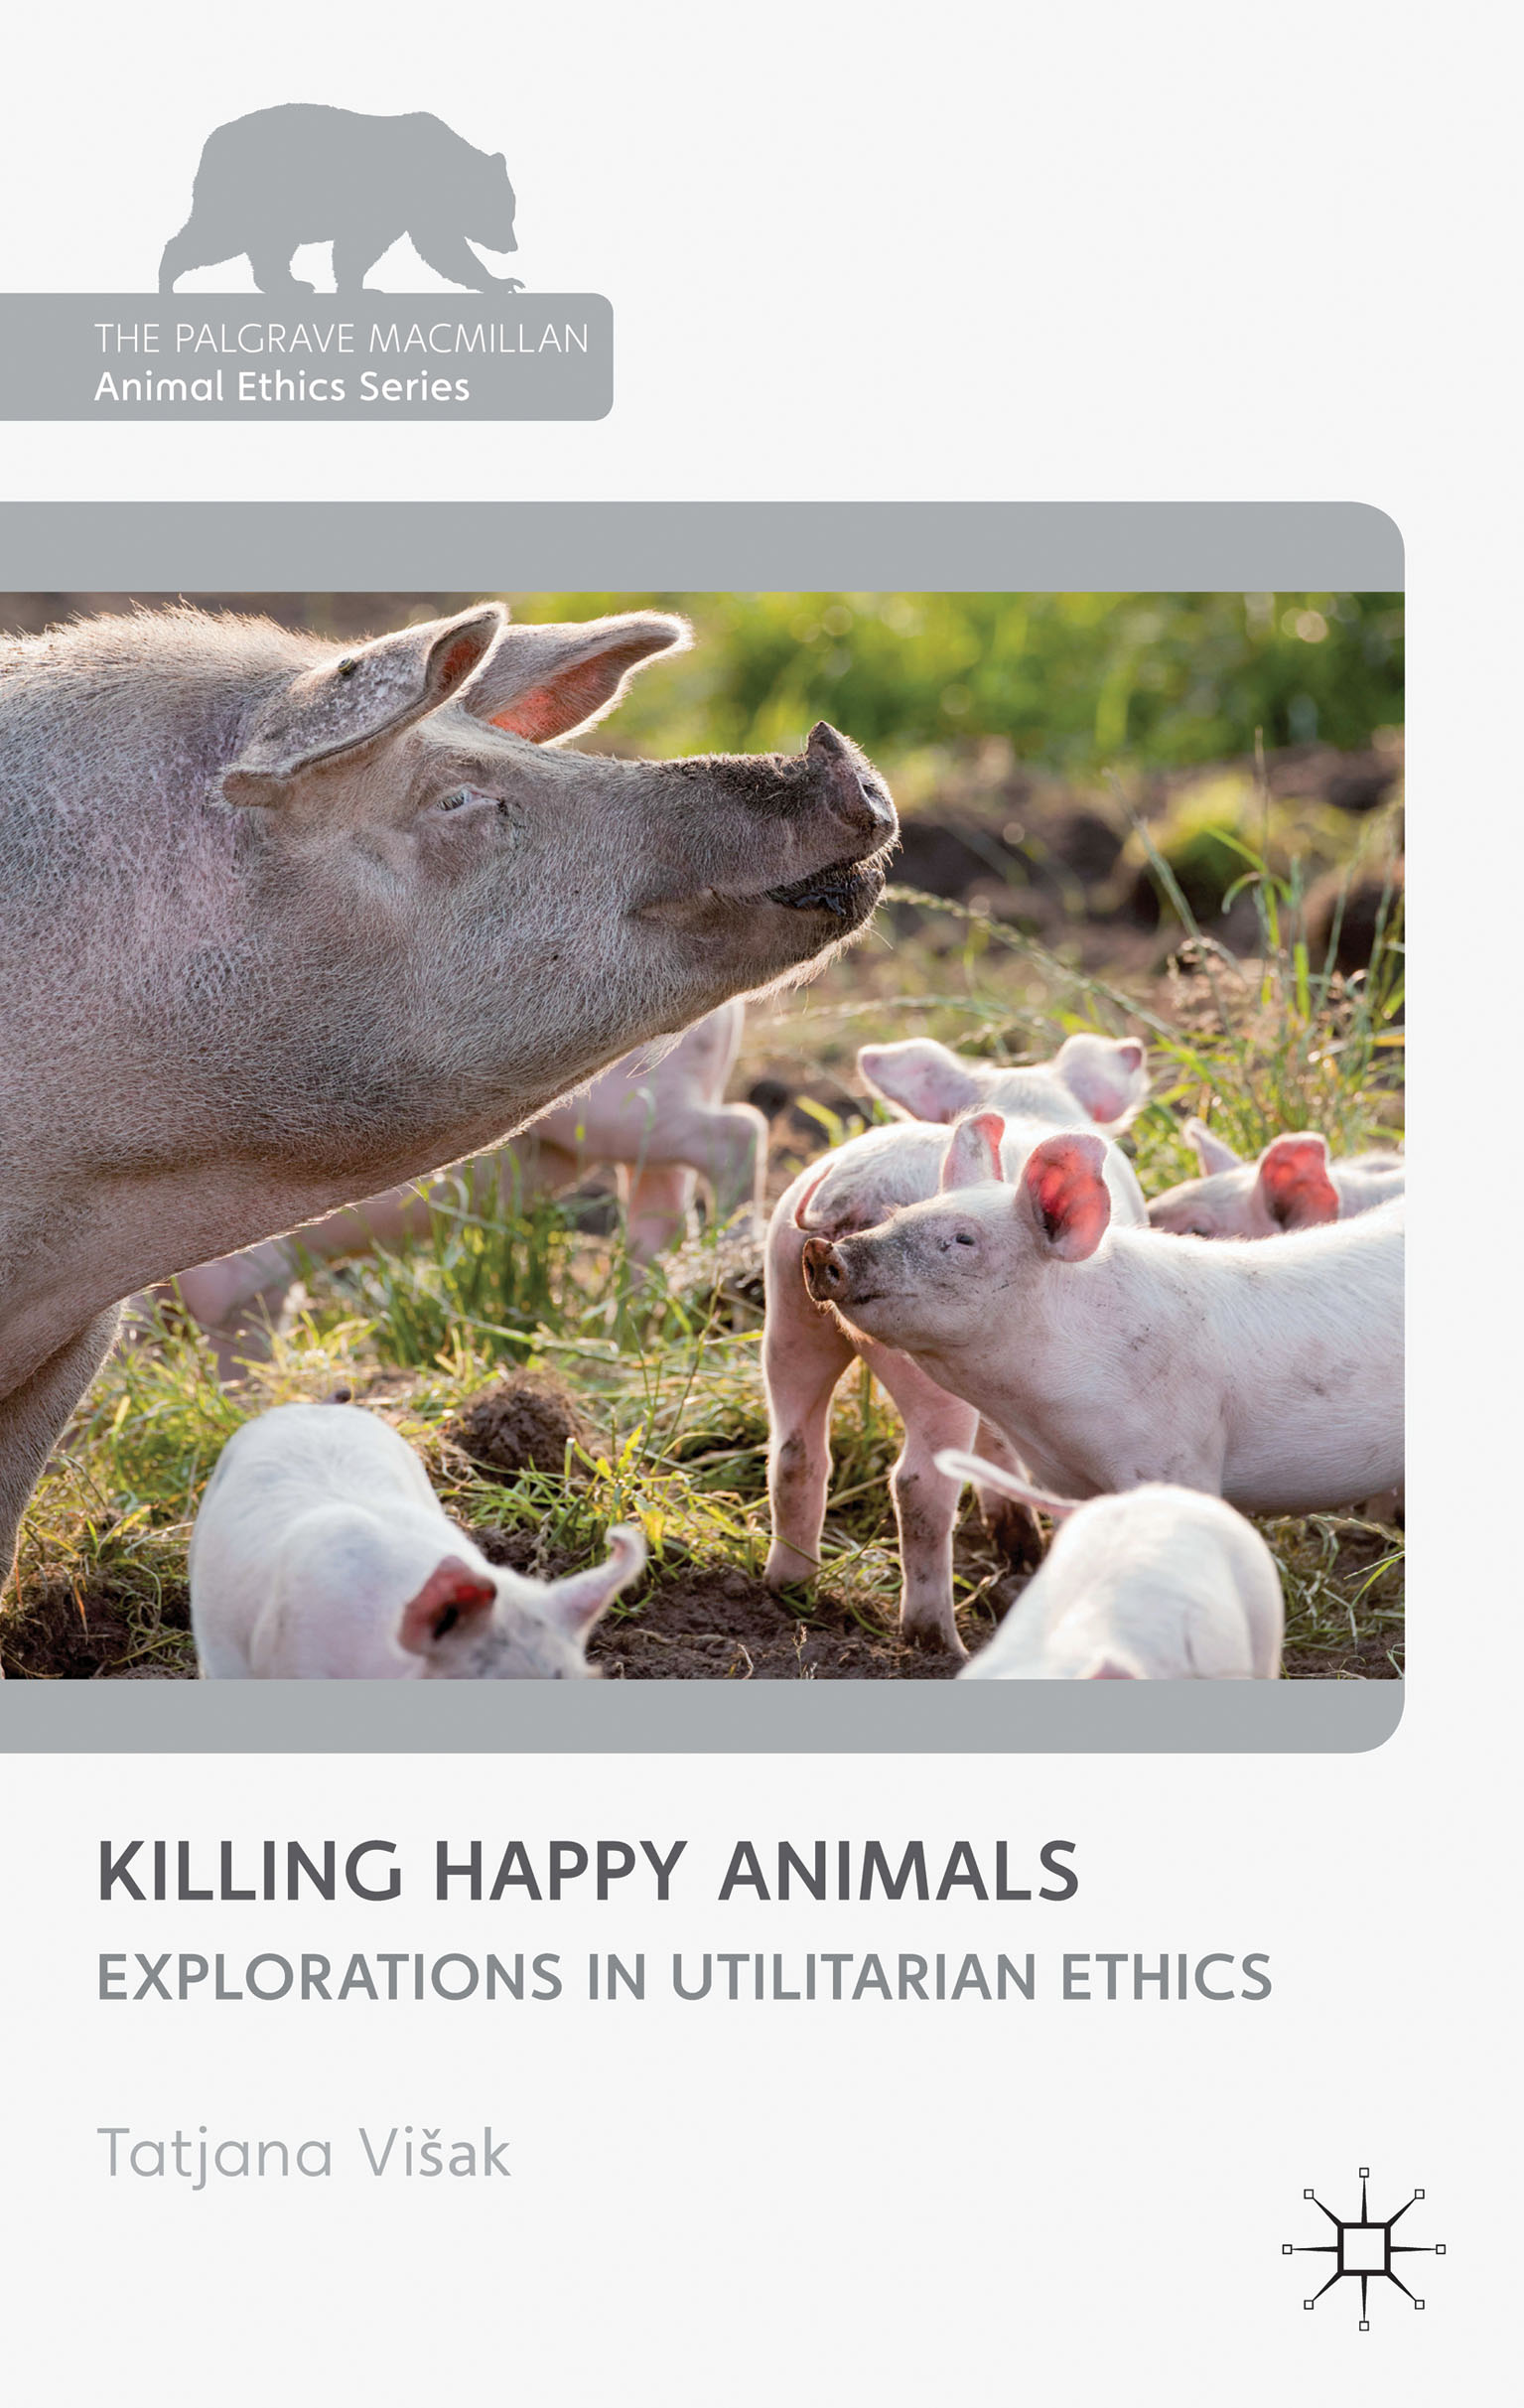 killing animal for food essay Extend that empathy, compassion and kindness to all other animals, including  animals raised and killed for food, clothing, or other such uses.